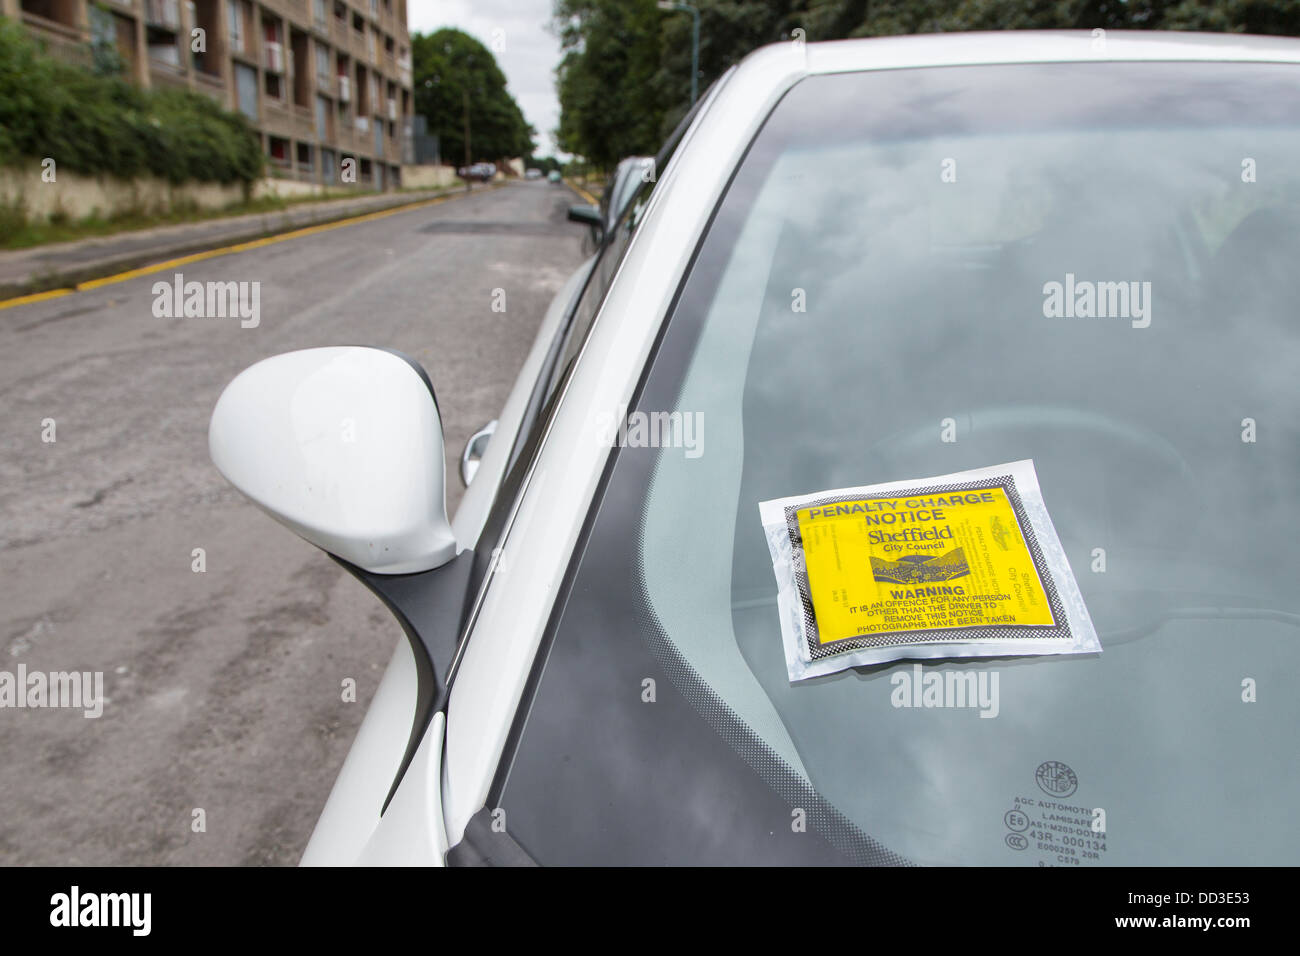 Parking ticket attached to illegally parked car on quiet street in Sheffield, South Yorkshire - Stock Image